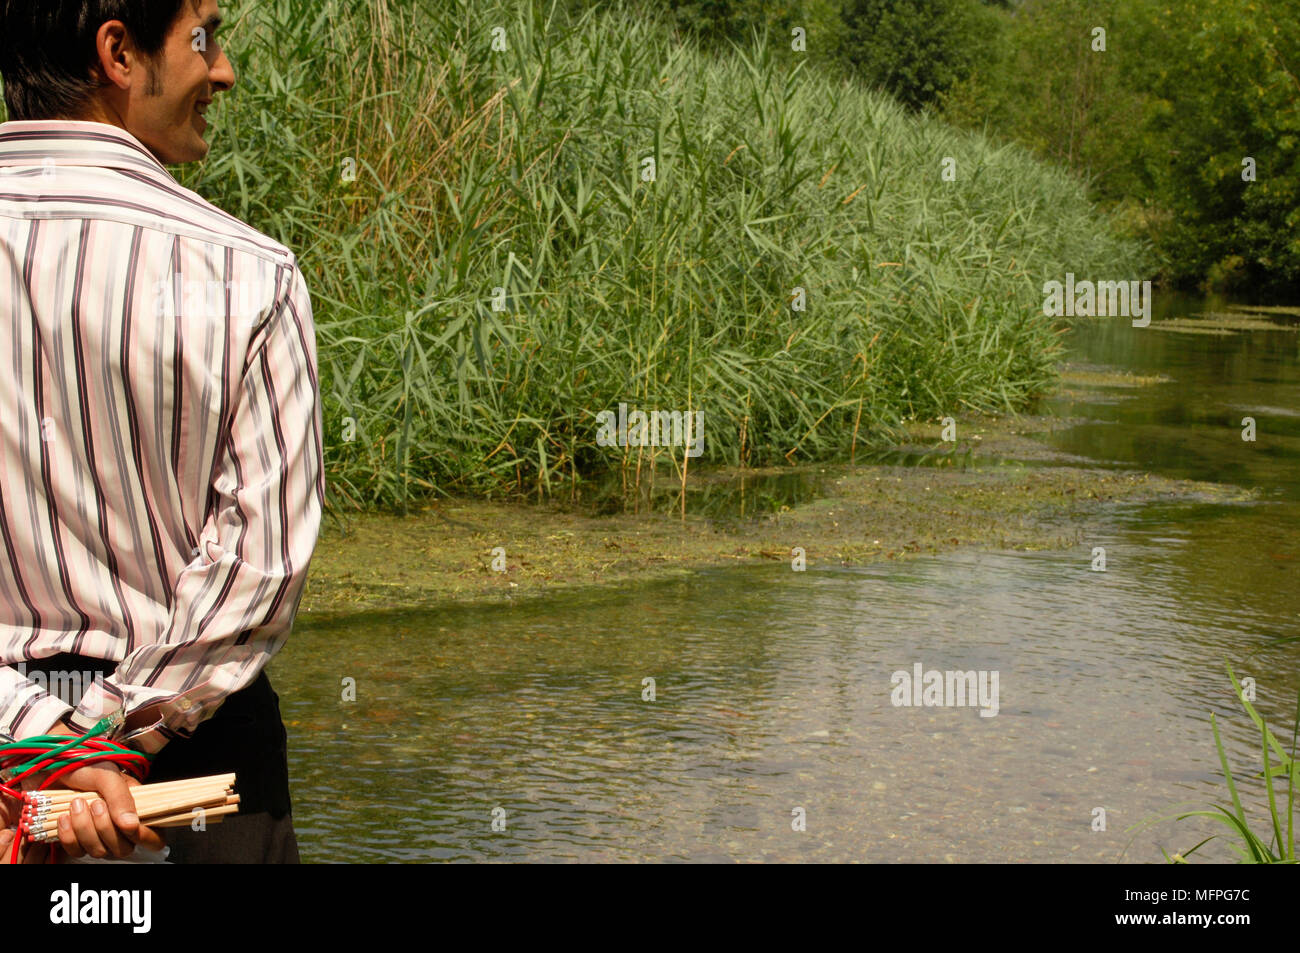 Rear view of a young man standing near a river with his hands tied behind his back   Ref: CRUSC_10015_019  Compulsory Credit: Stuart Cox/Photoshot - Stock Image